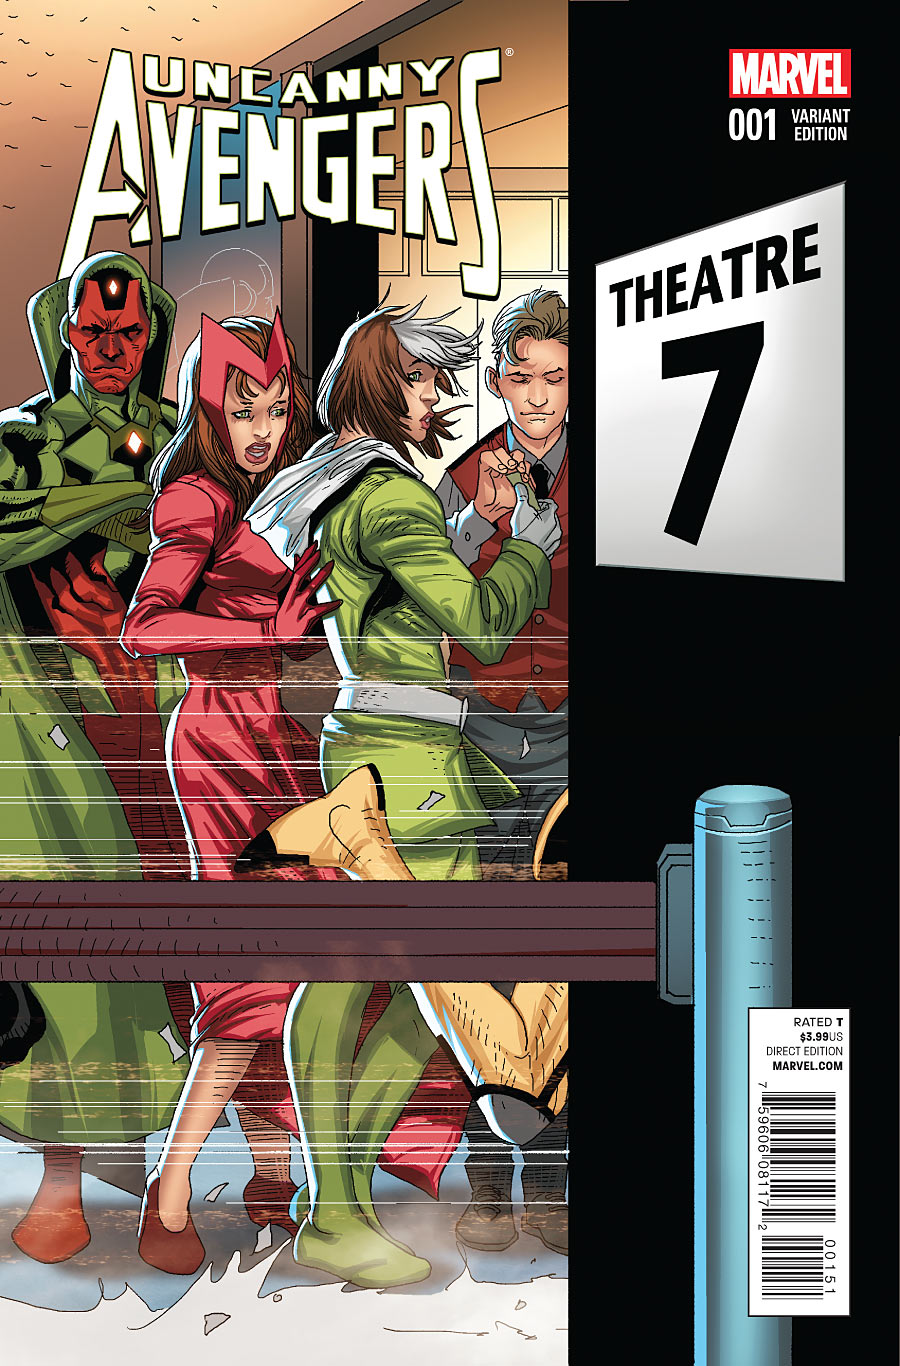 Uncanny Avengers #1 Welcome Home Variant Comic Book